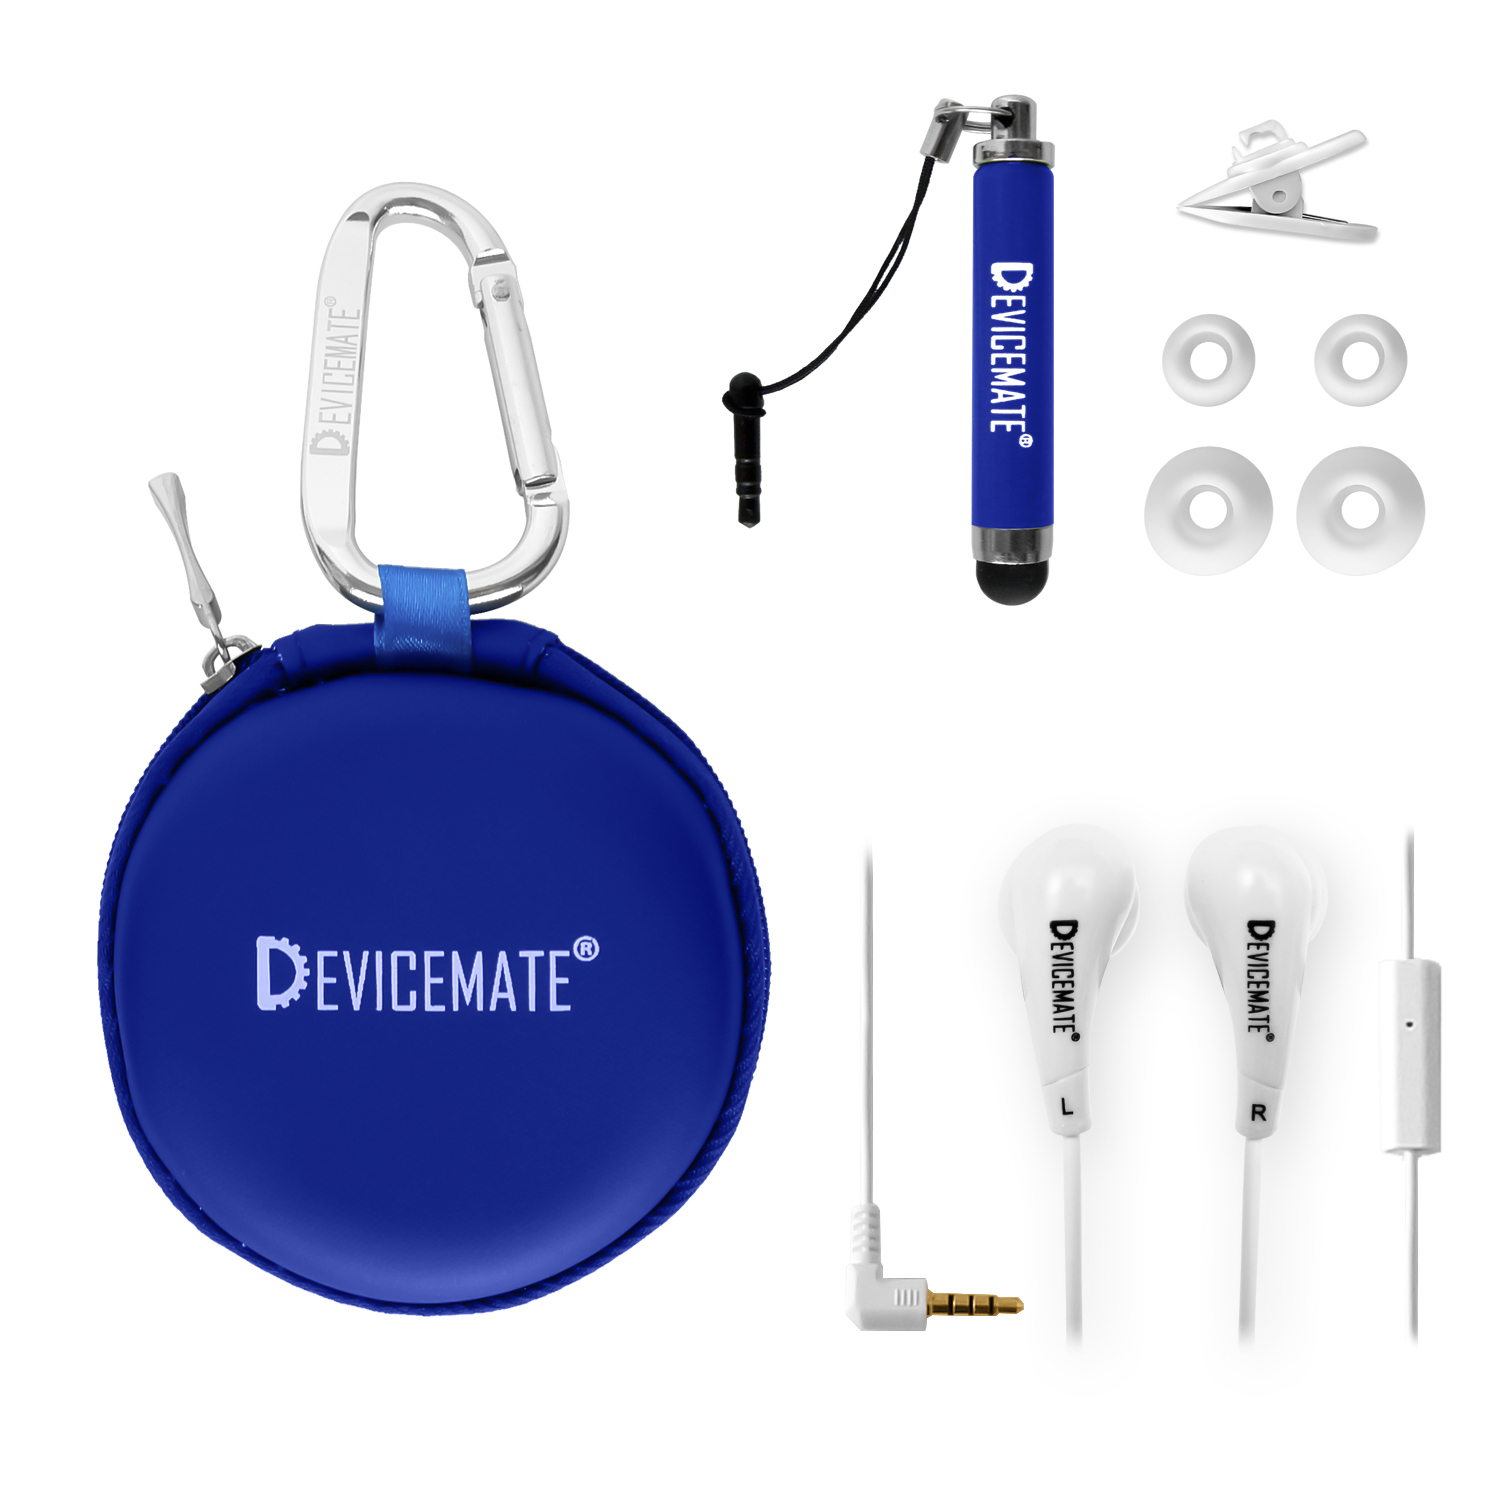 Devicemate SD 455-CTB Earphones w/mic for iPhone [CoBlue] Case